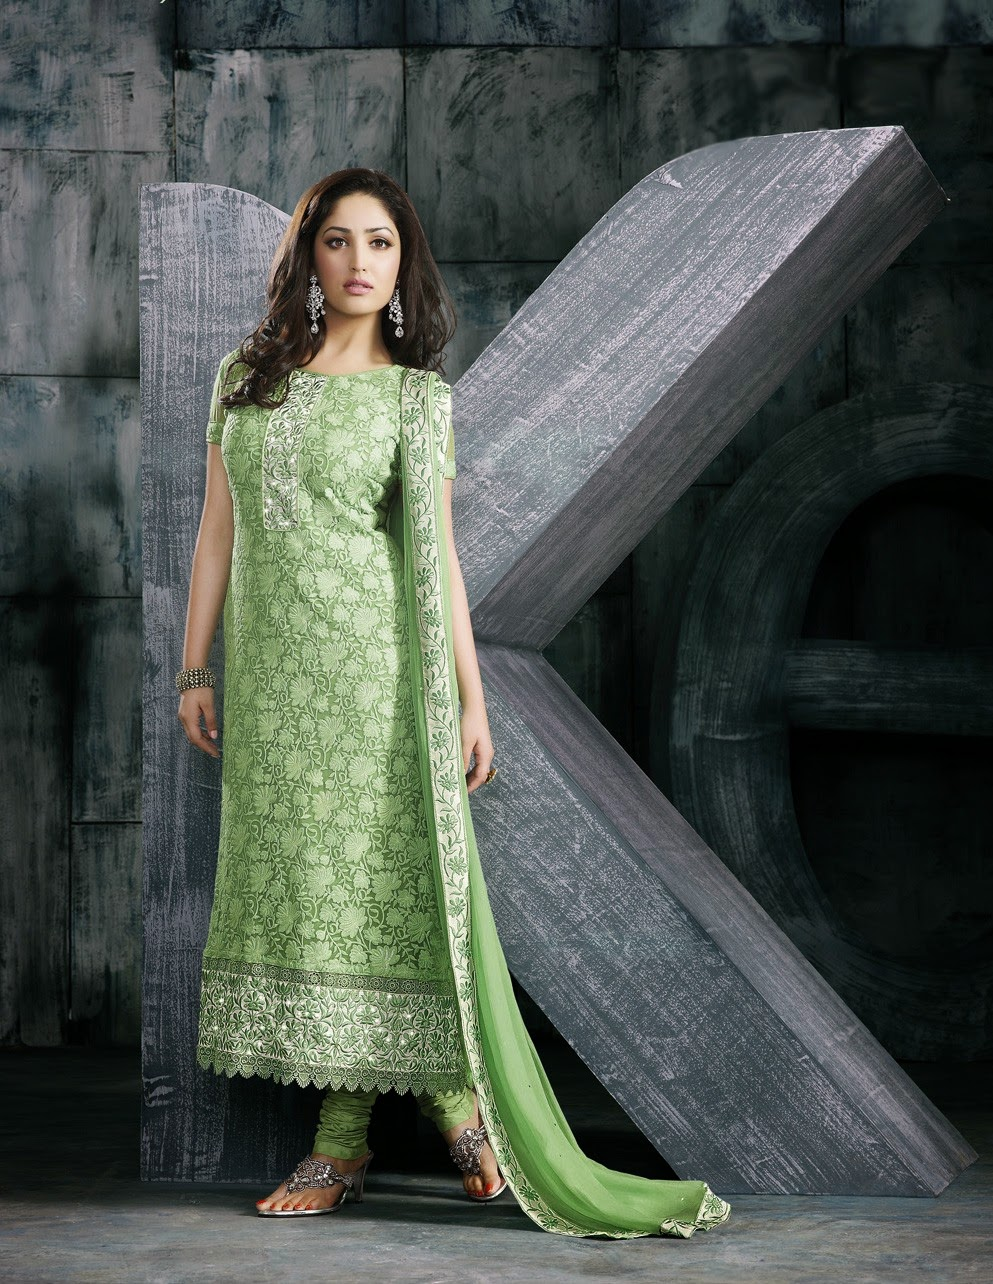 Yami Gautam Embroidered Churidar Suit Wallpapers Free Download